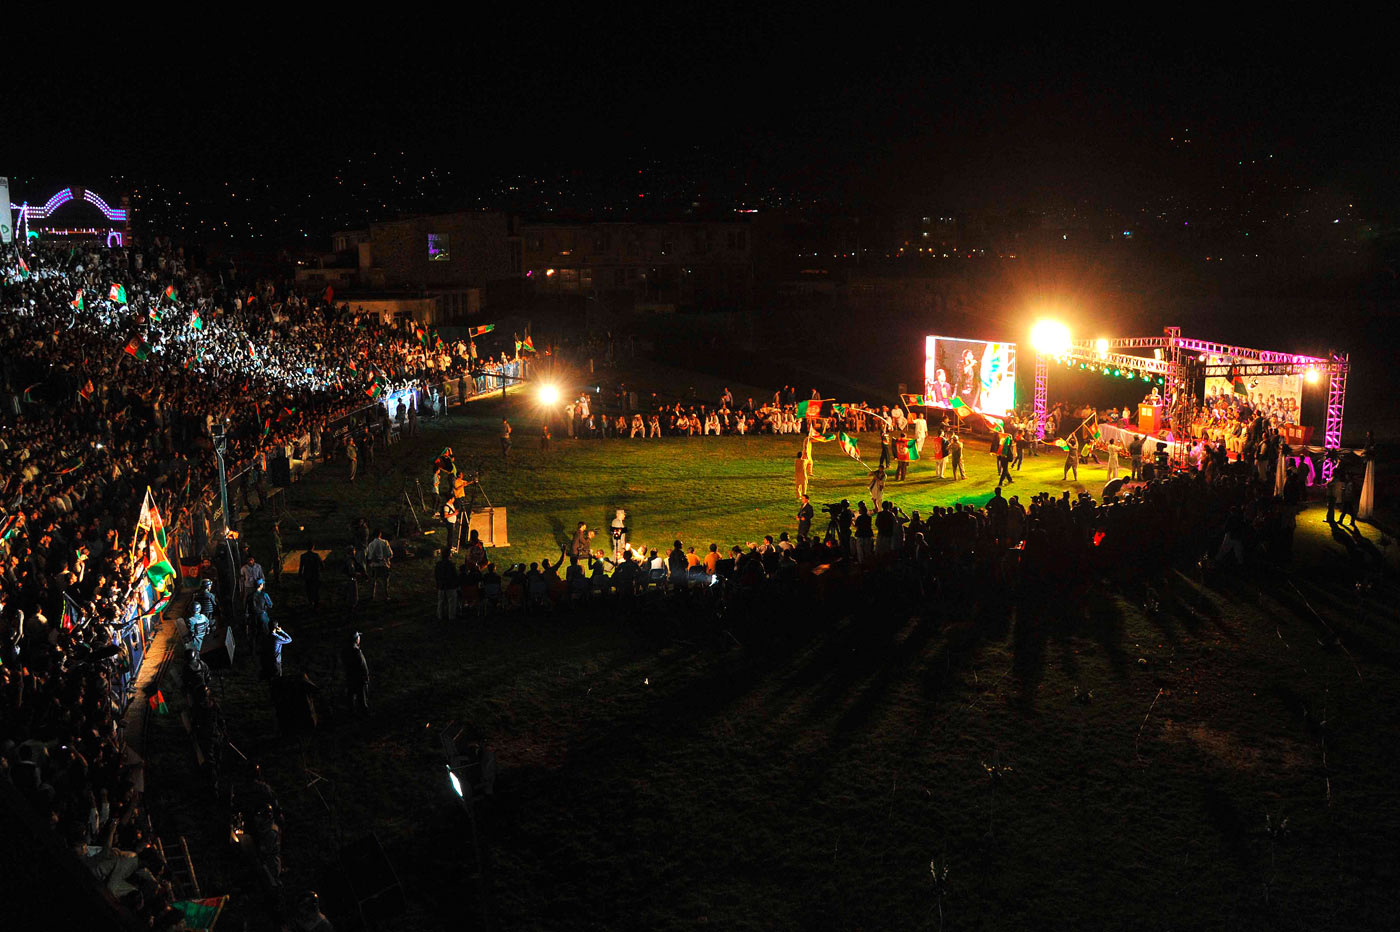 Home, victorious: crowds throng a stadium to welcome the team after it qualified for the World Cup, in October 2013